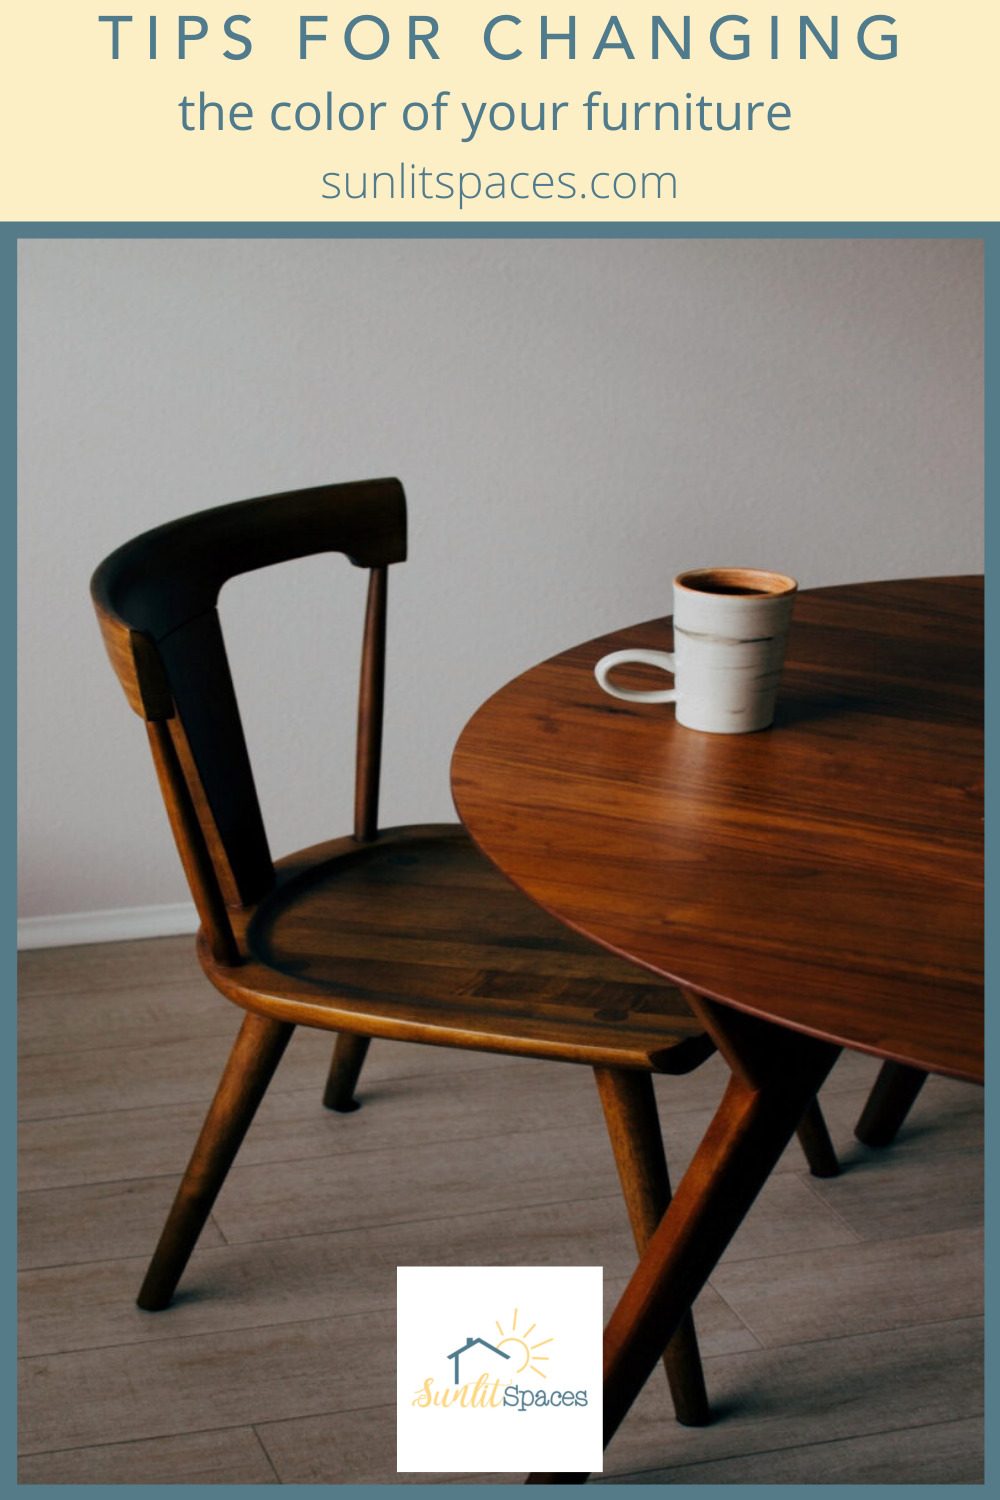 Sunlitspaces.com has the best tips for anyone interested in spicing up a drab space. Find out all you need to know before your next project. Learn how to change the color of any of your furniture now!